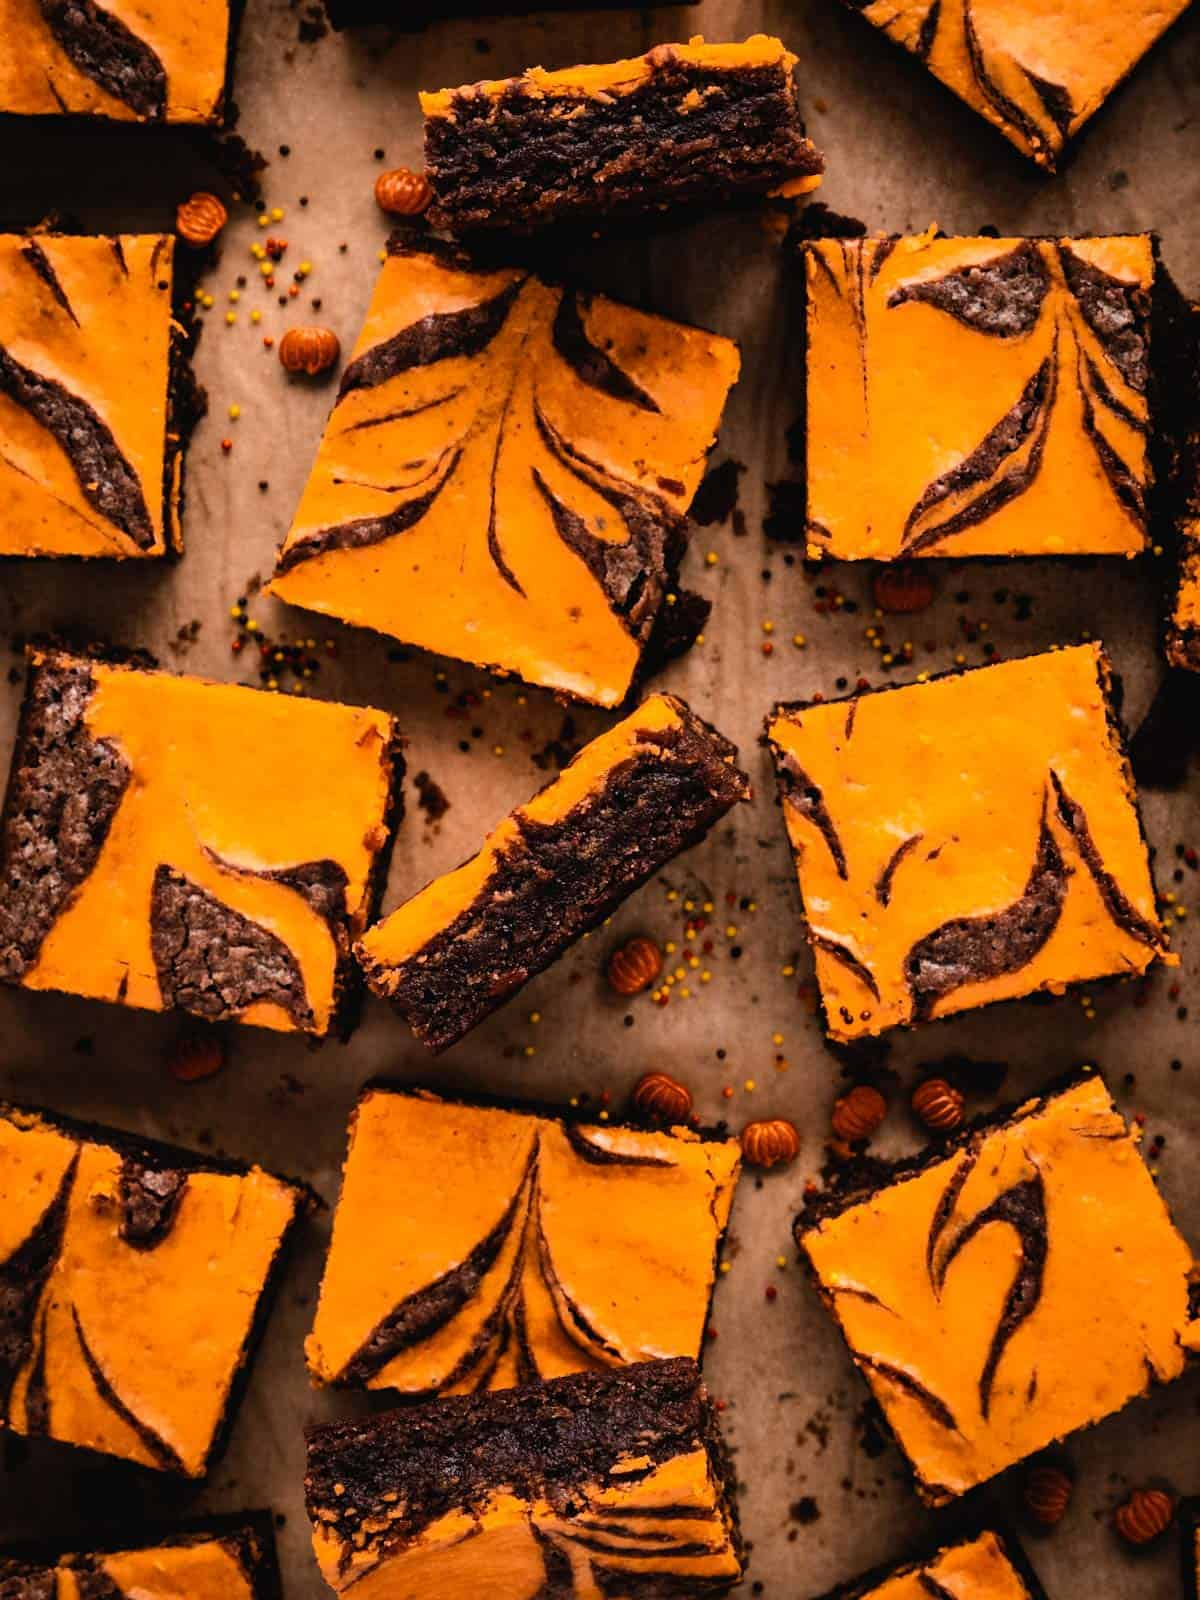 cream cheese brownies cut into squares showing the chewy texture